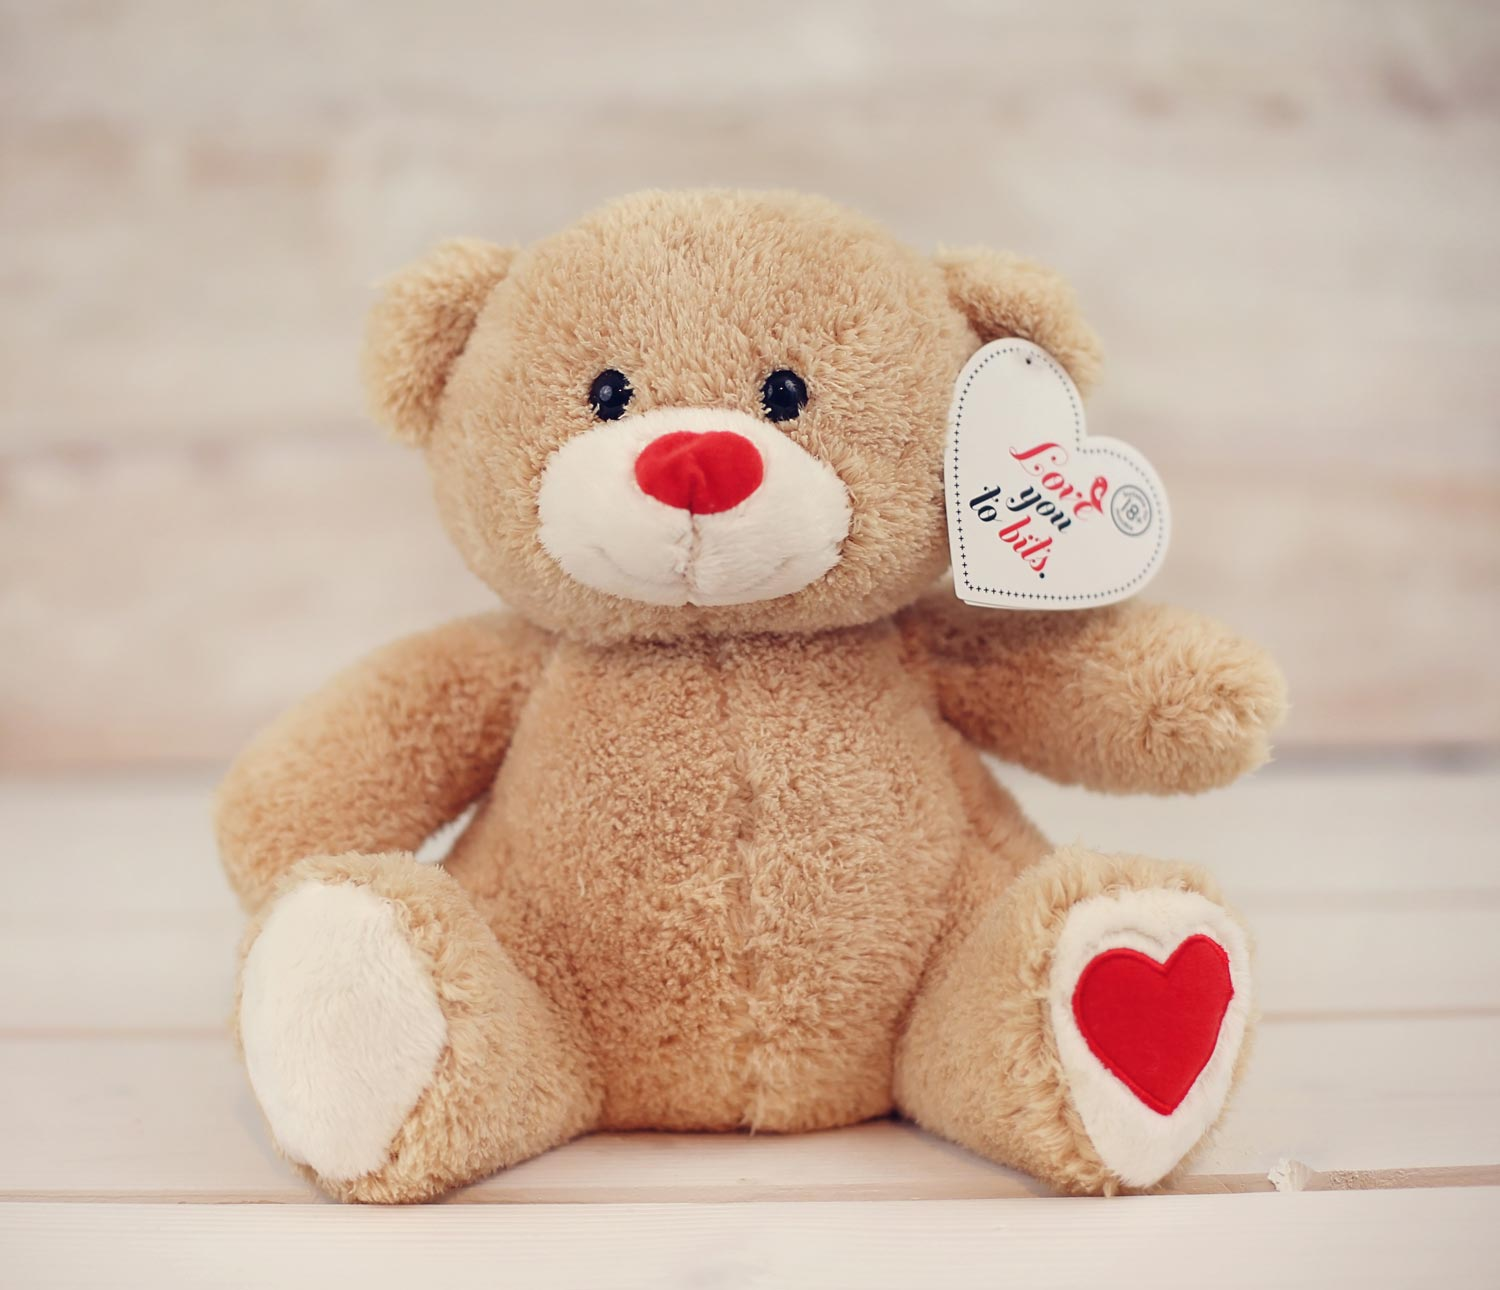 Teddy heart edible fruit bouquet - Tedy shop ...